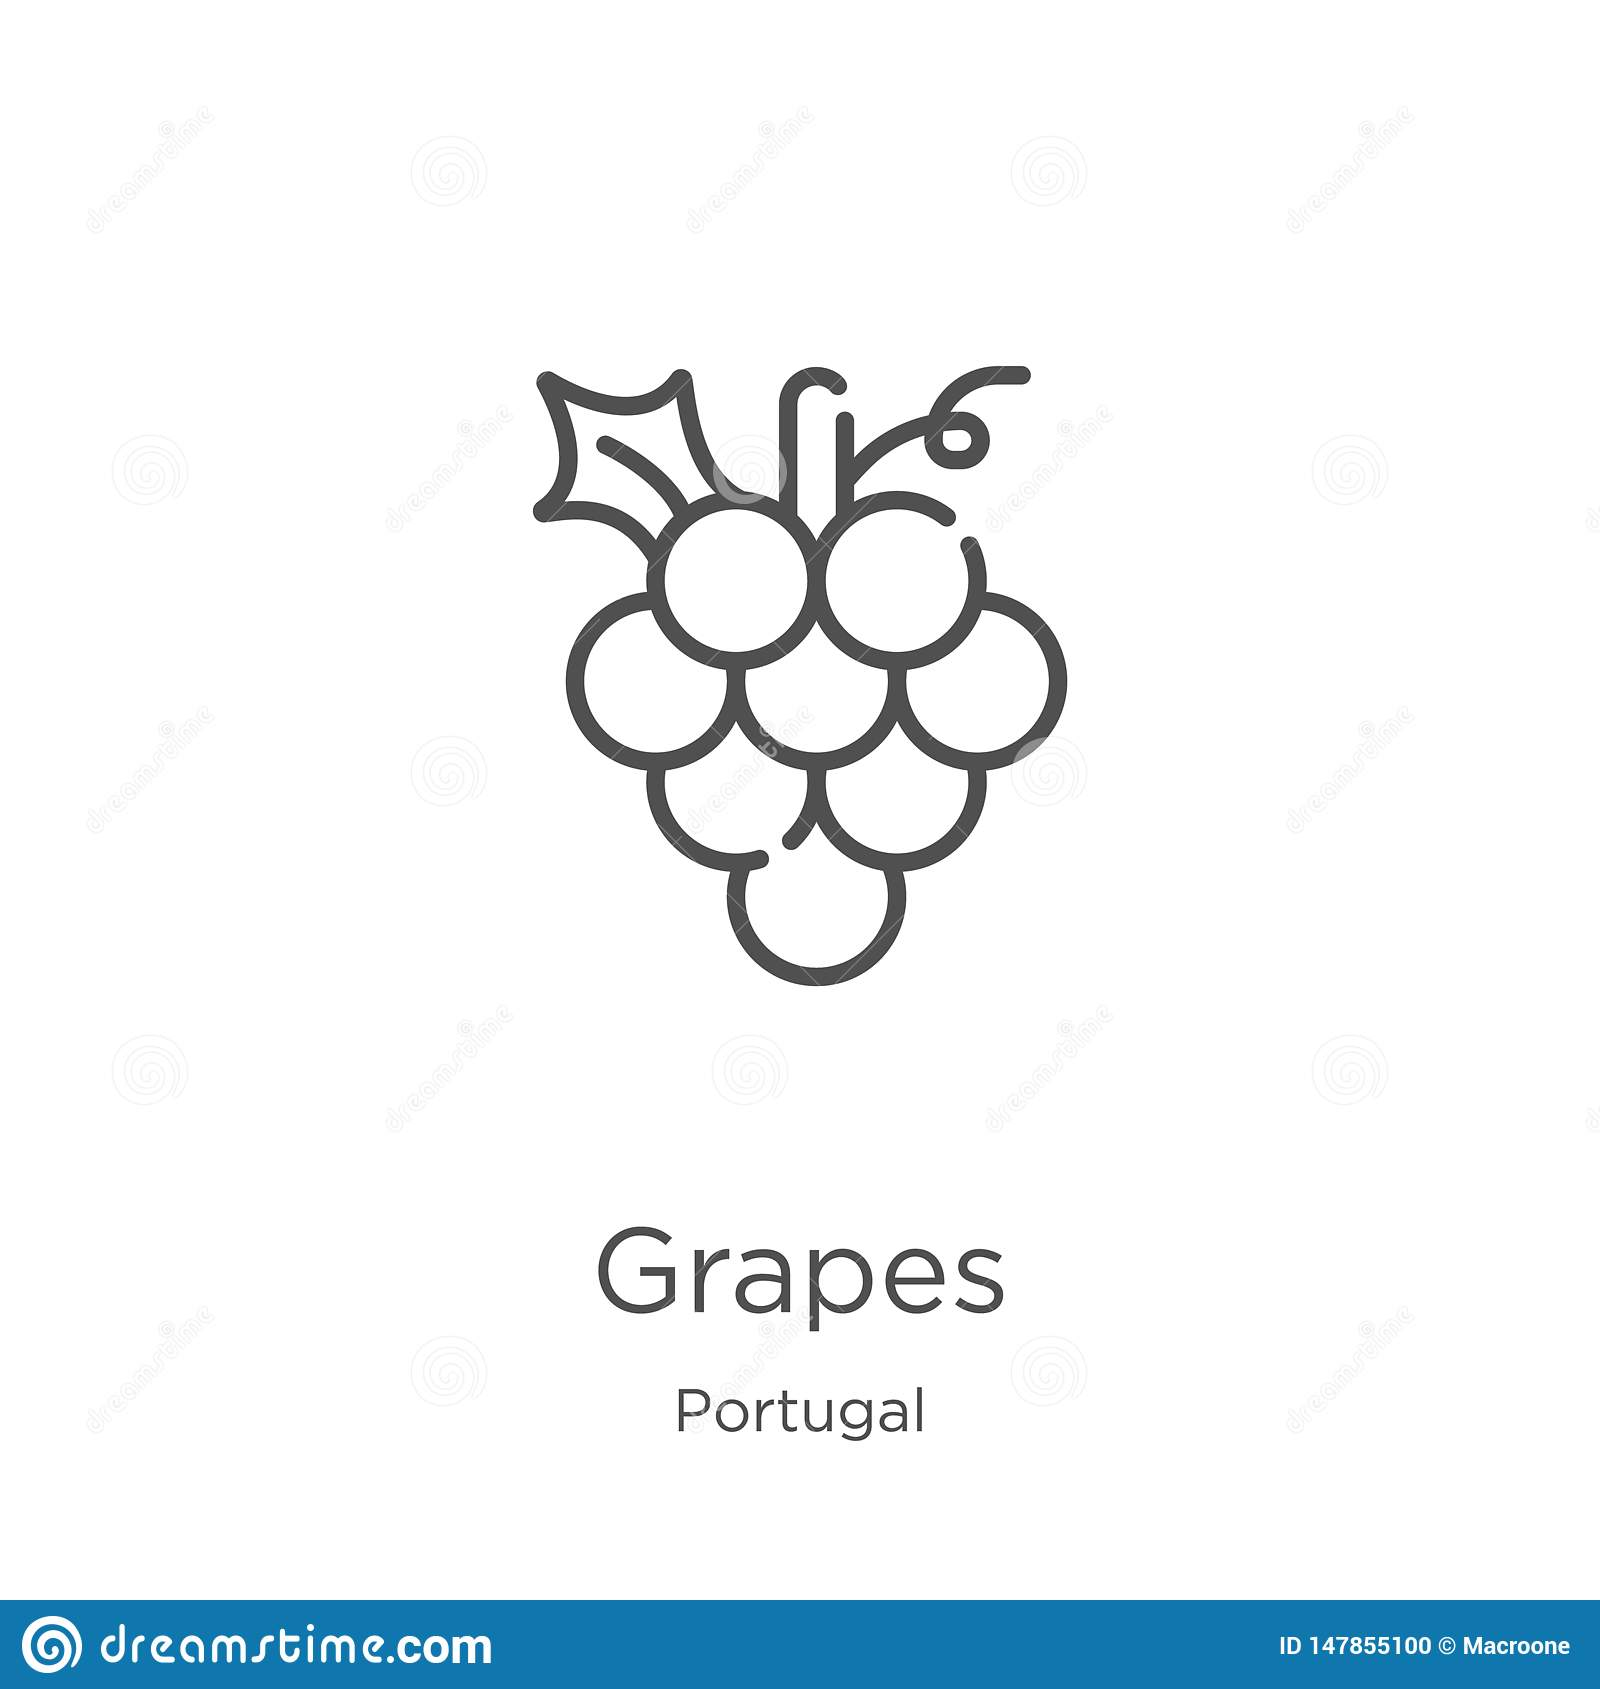 grapes icon vector from portugal collection. Thin line grapes outline icon vector illustration. Outline, thin line grapes icon for